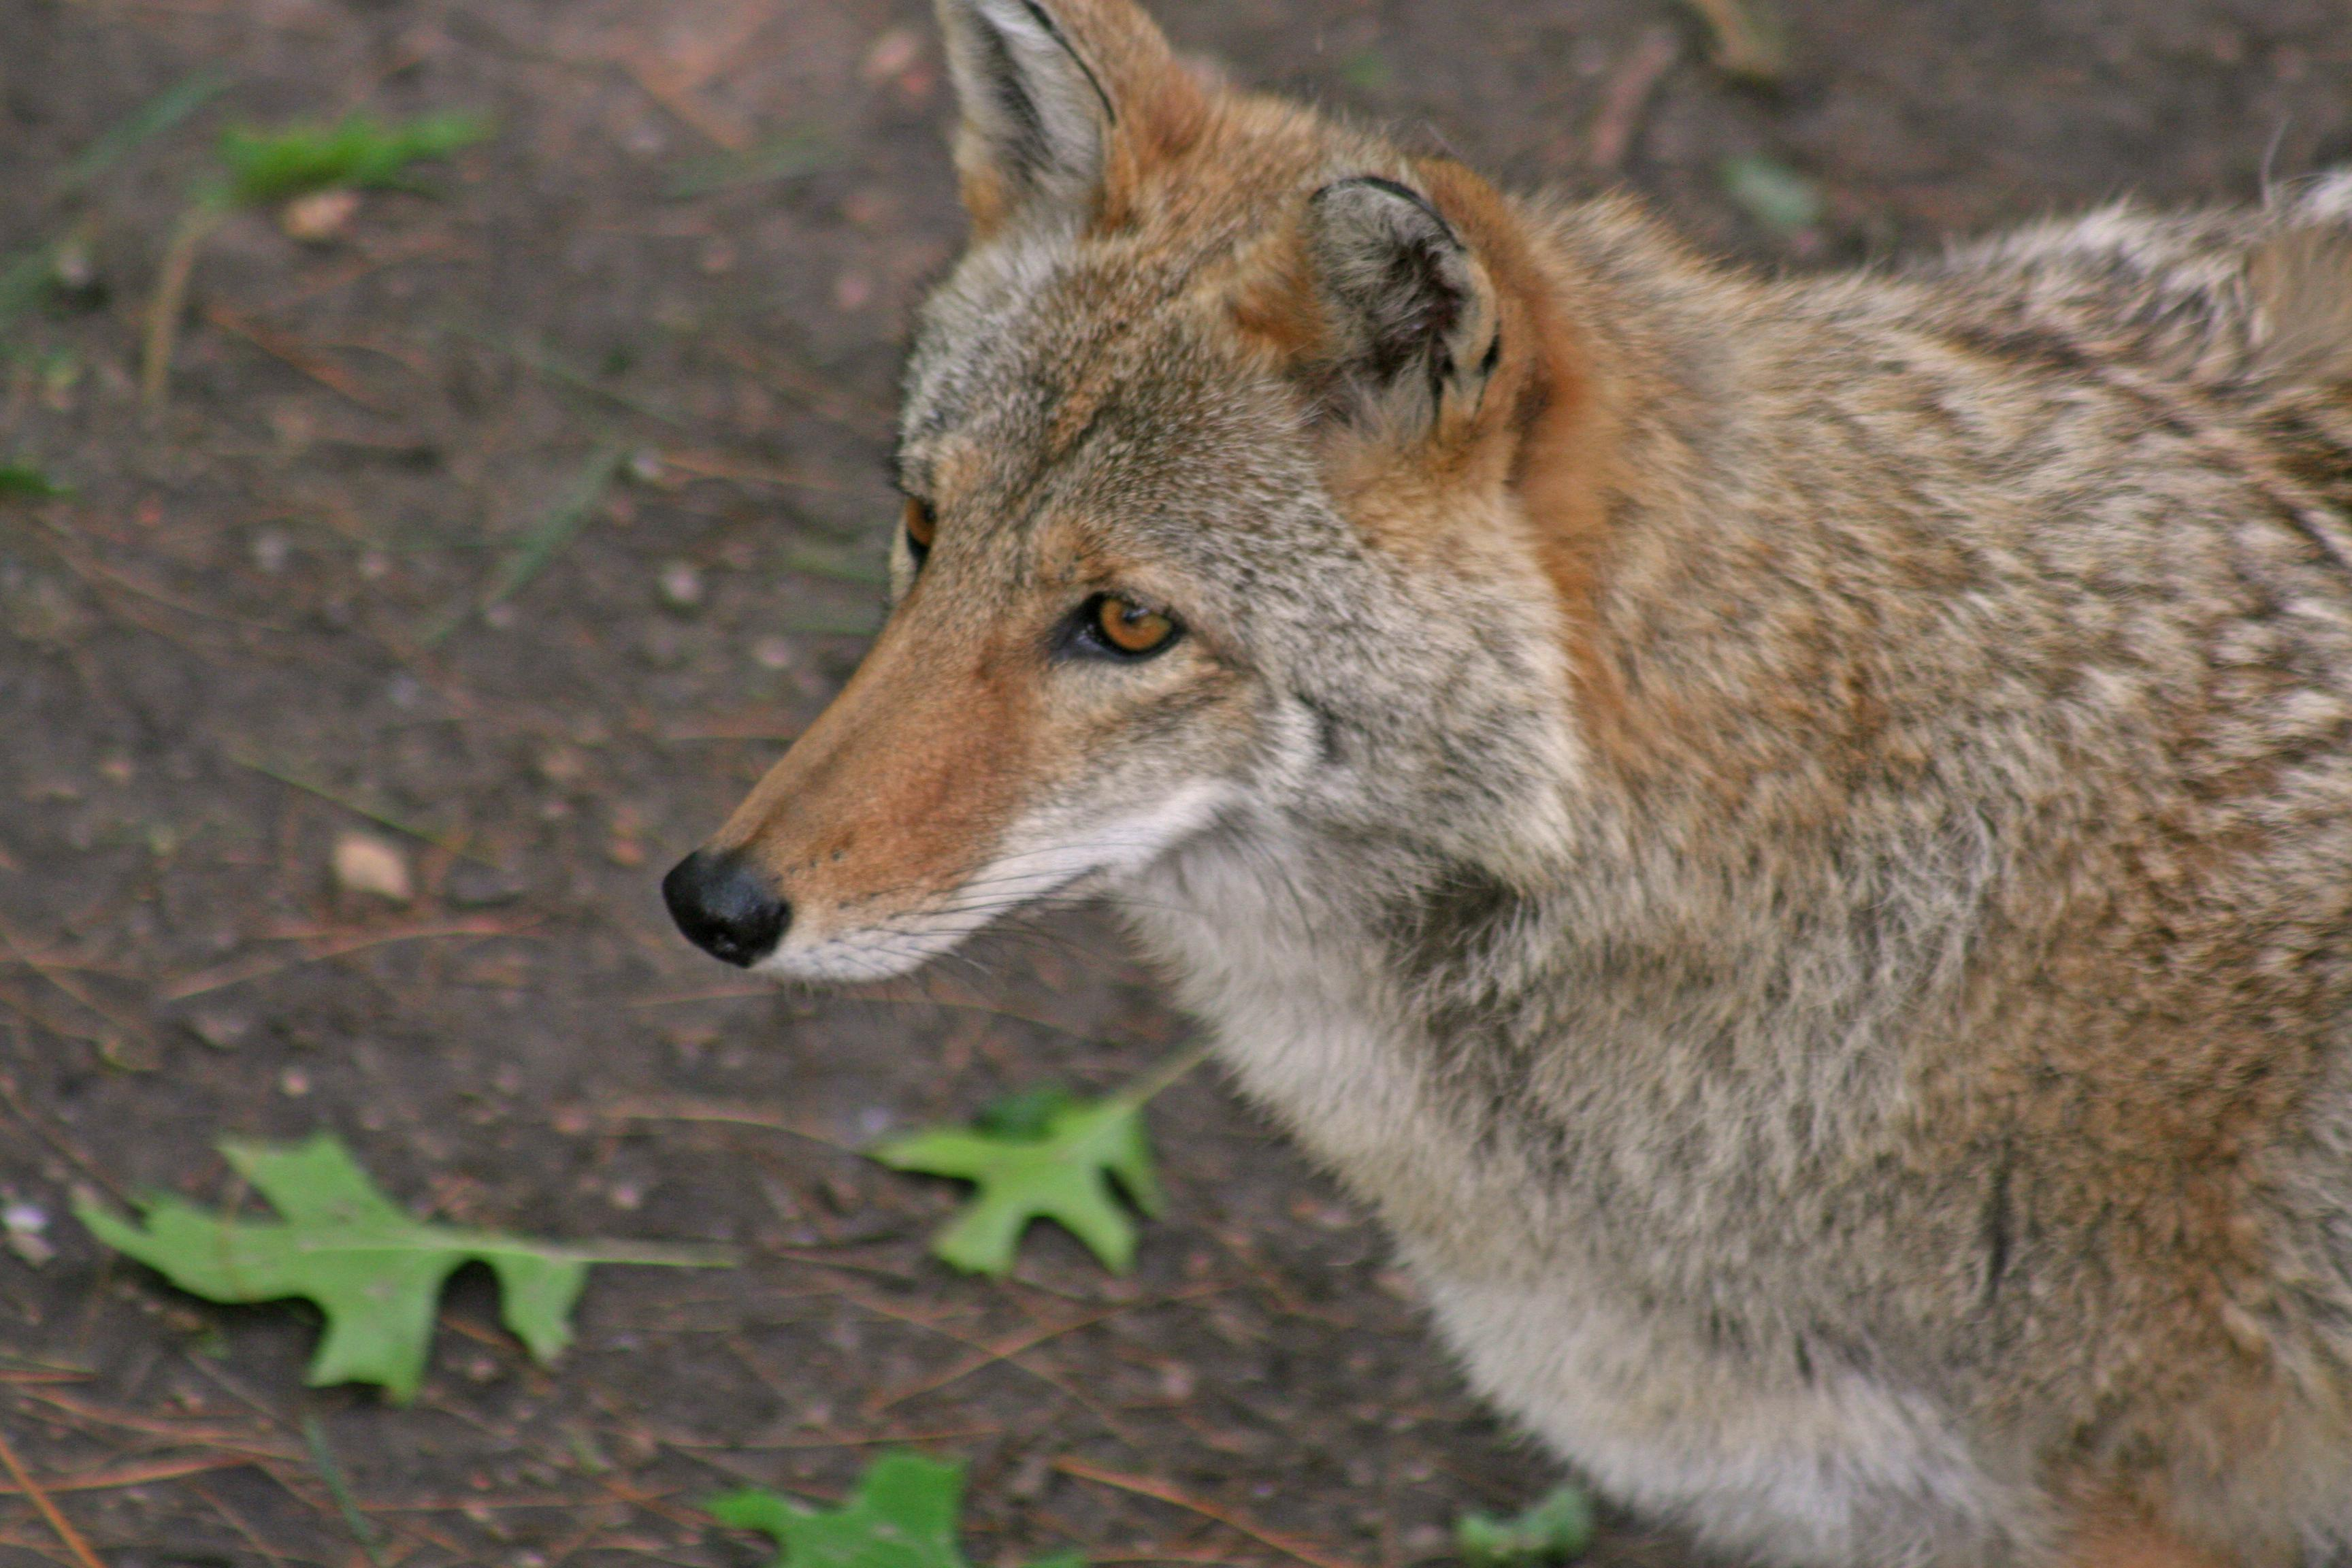 coyote photo from morguefile.com